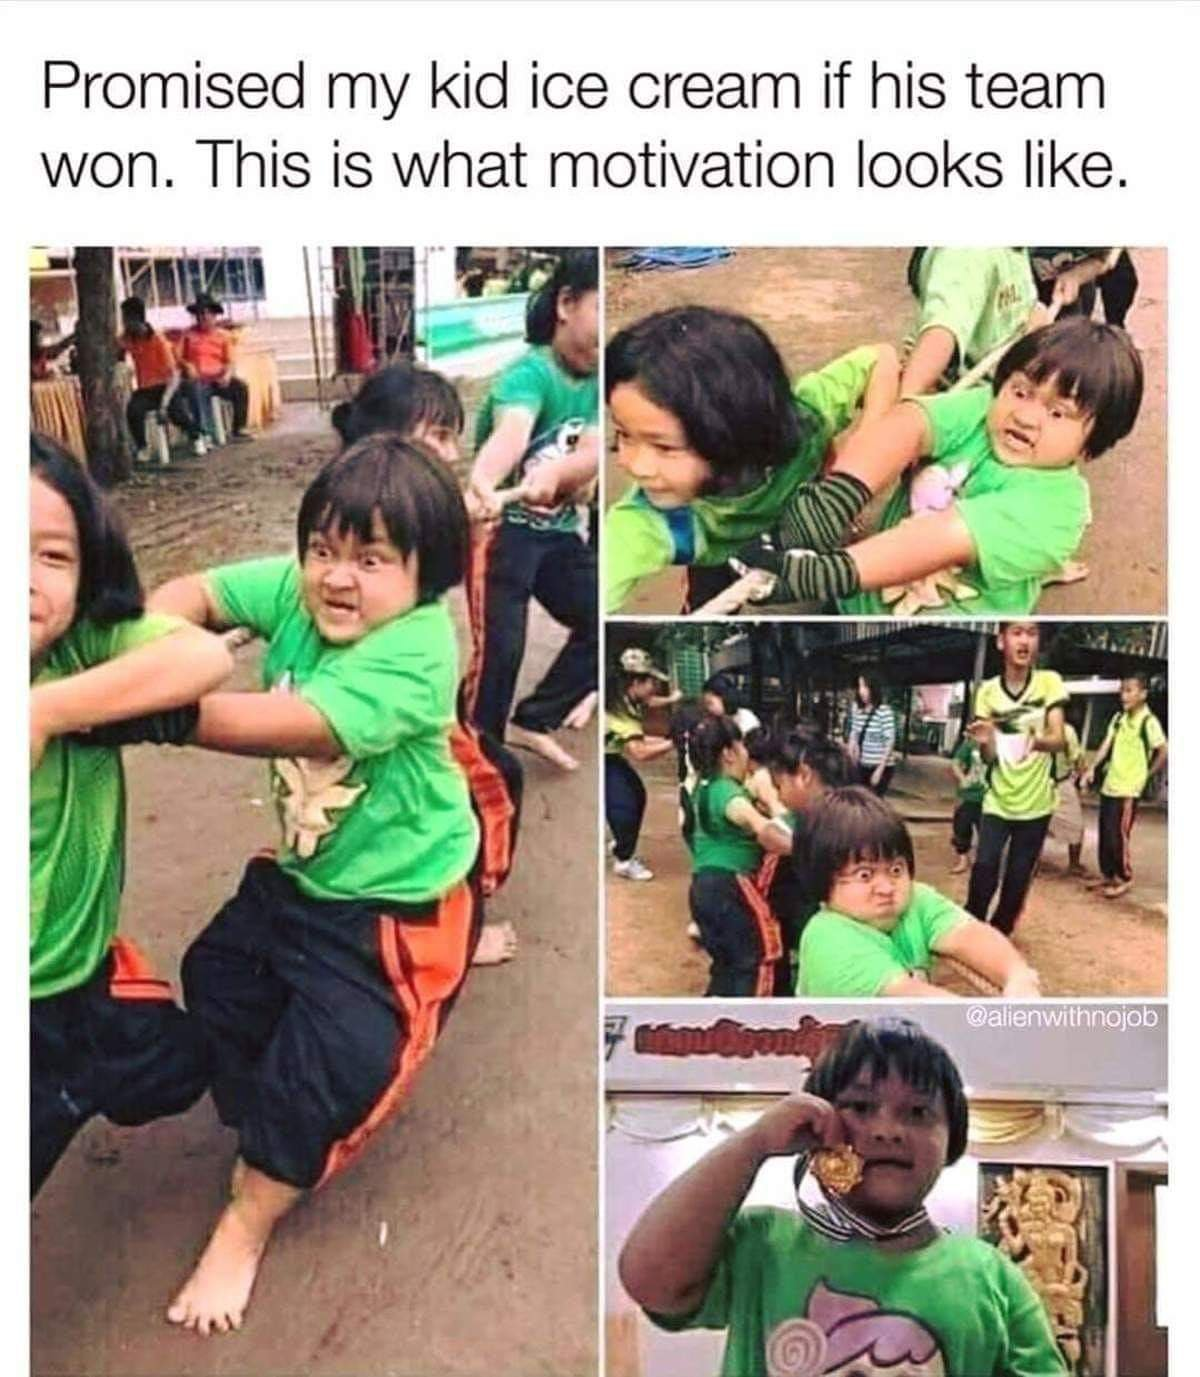 Promised My Kid Ice Cream If His Team Won. This Is What Motivation Looks Like. https://inspirational.ly